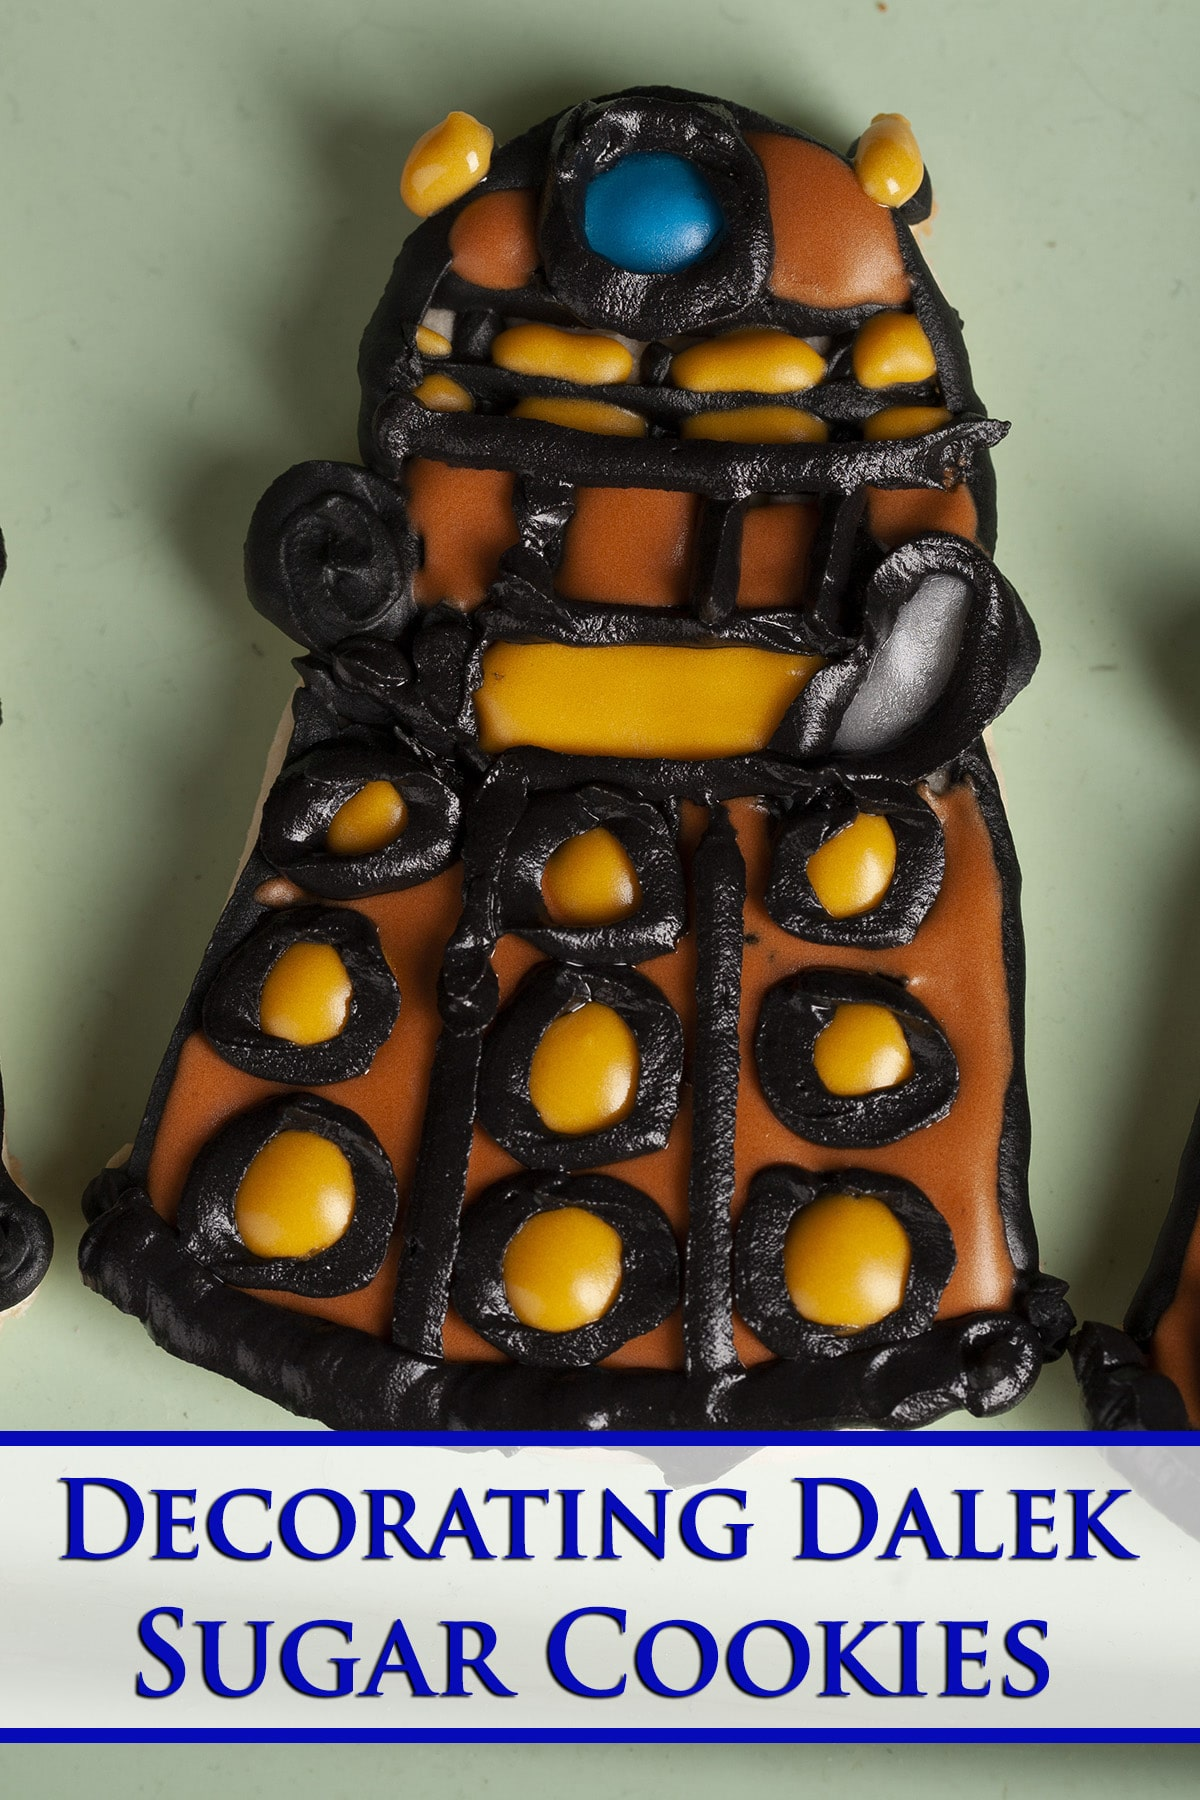 """A decorated sugar cookie. Blue text overlay says """"Decorating Dalek Sugar Cookies""""."""